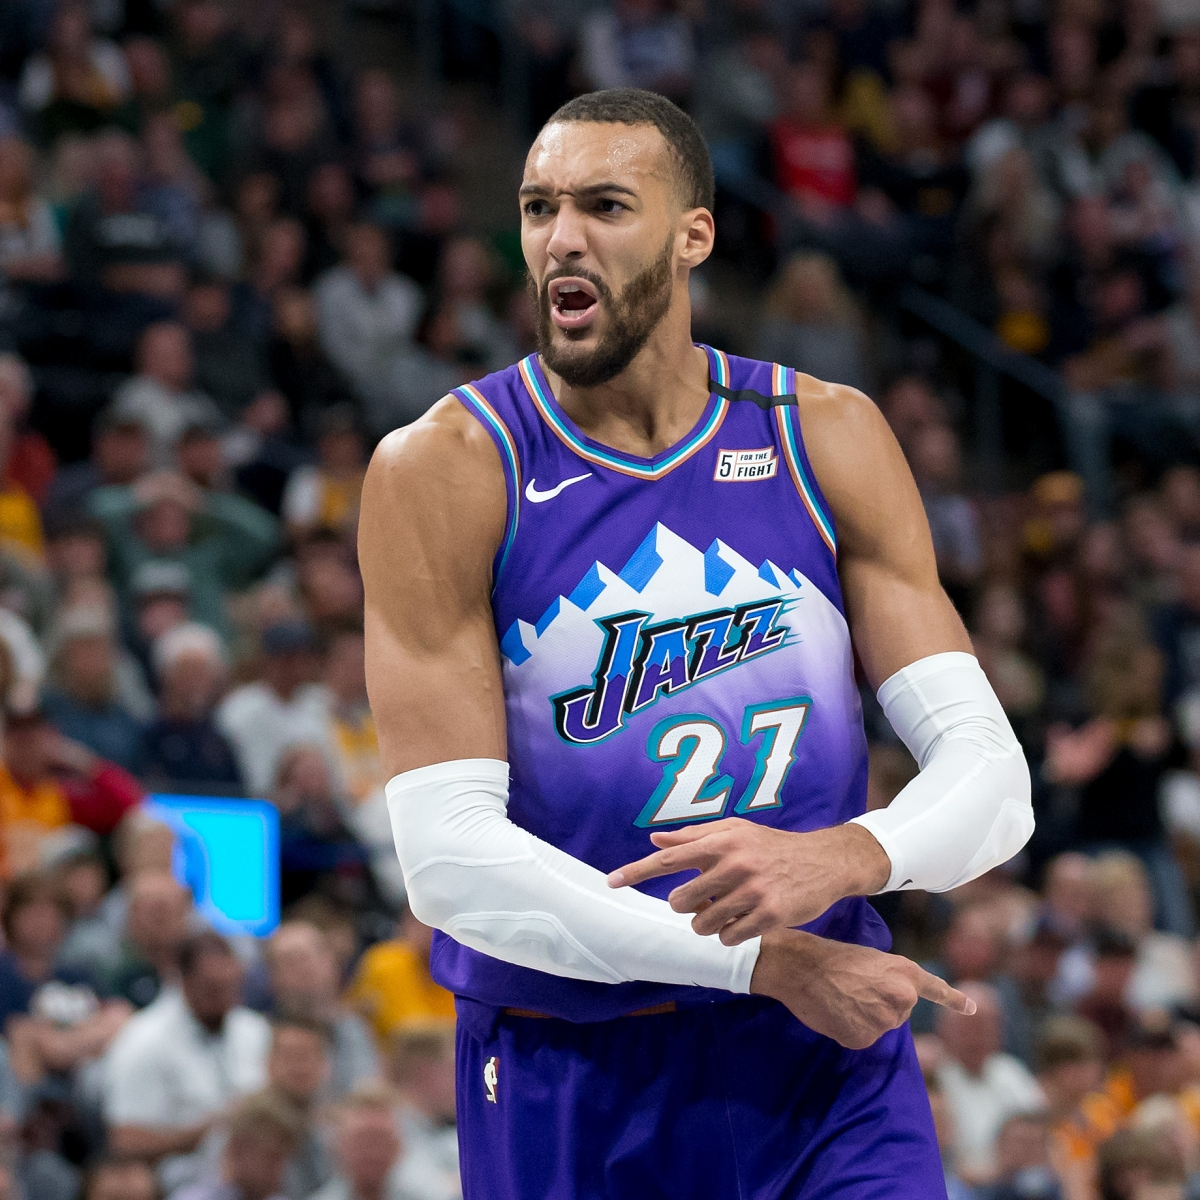 Coronavirus Update: NBA to suspend season after Utah Jazz's player Rudy Gobert tests positive for COVID-19